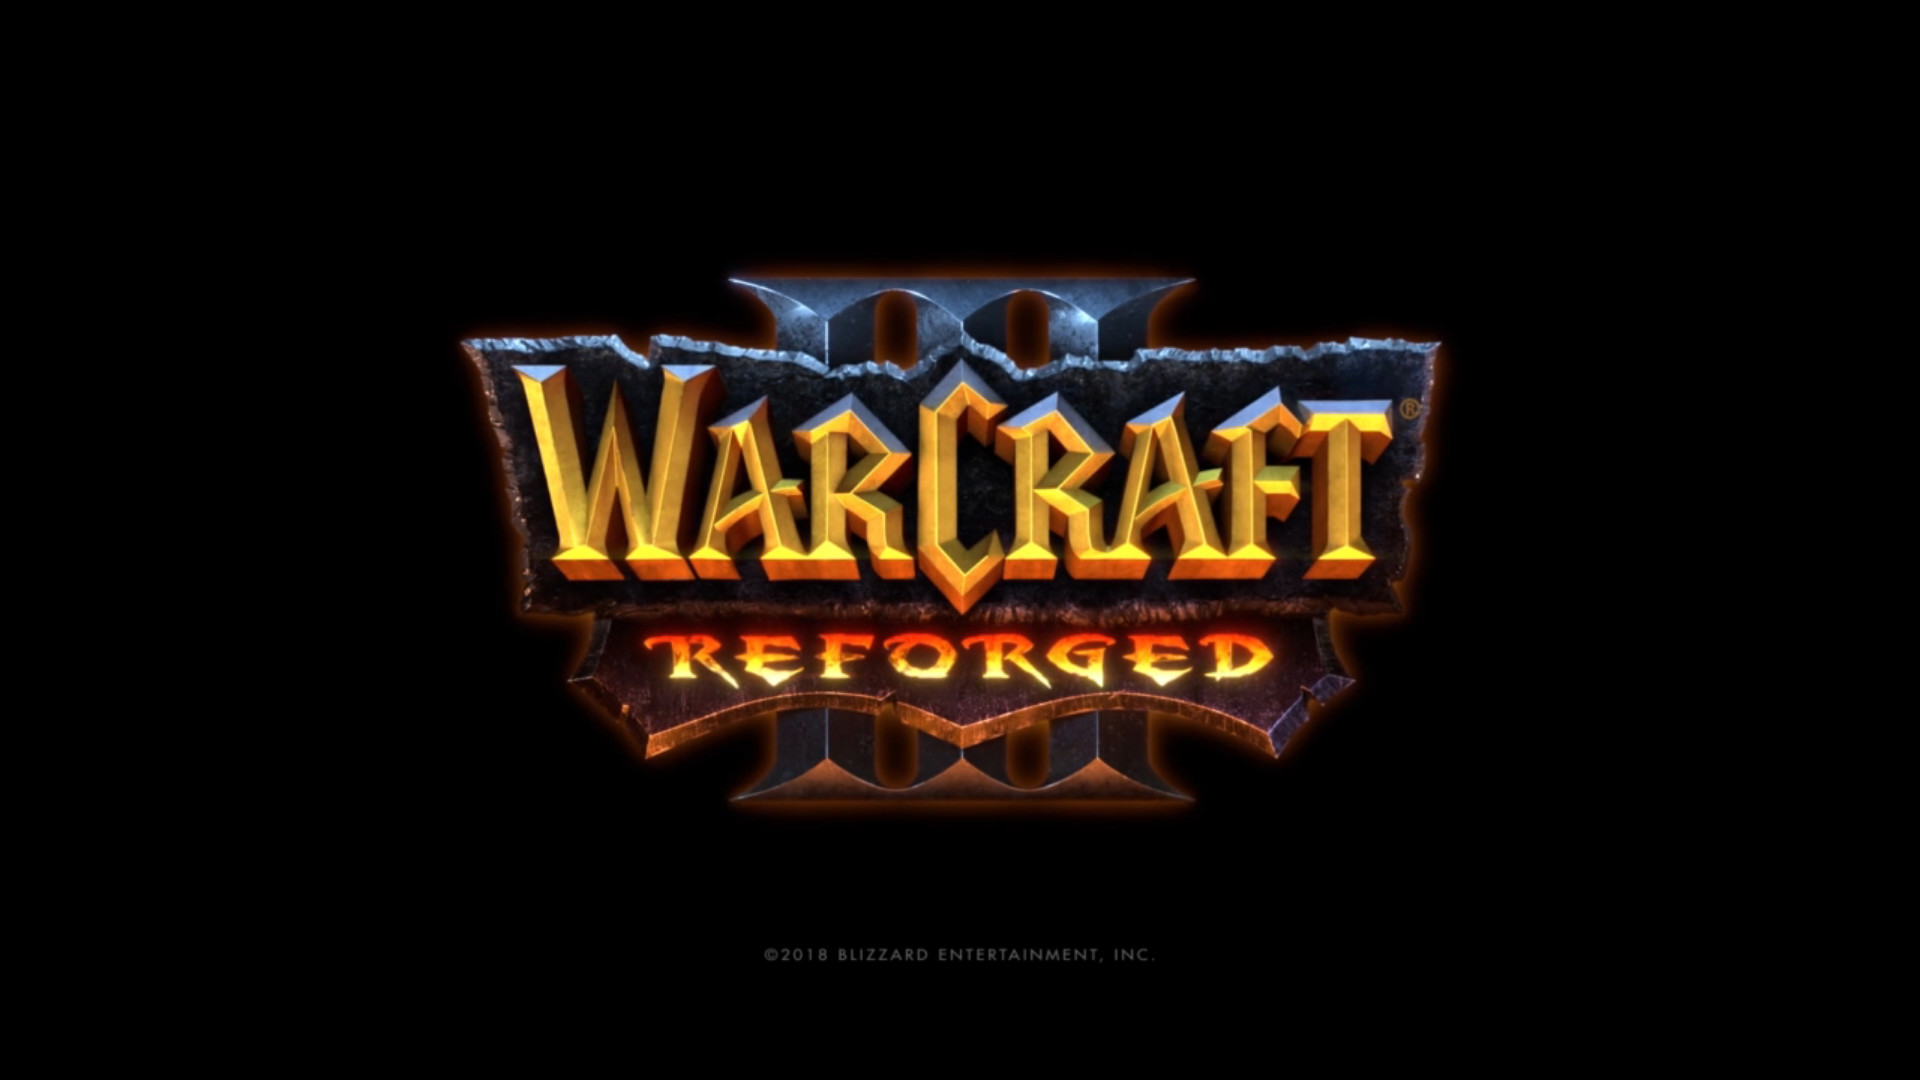 Warcraft 3 is getting a remaster called